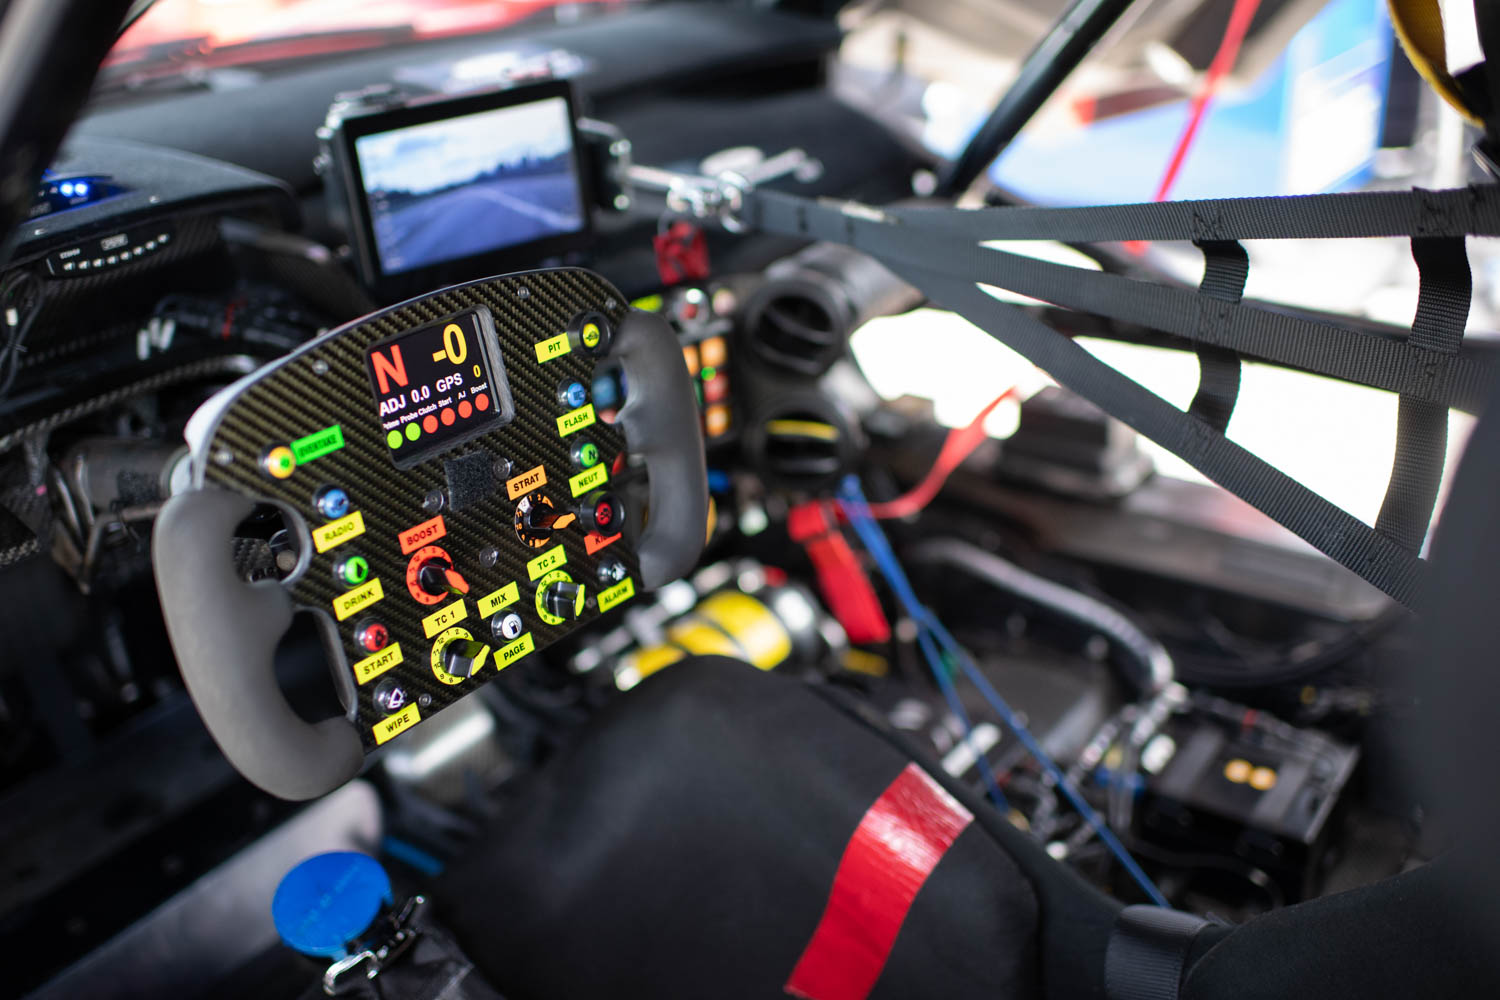 The GTLM's steering yoke— wheels are passé—is the car's command center. The screen in the background displays the rear view.